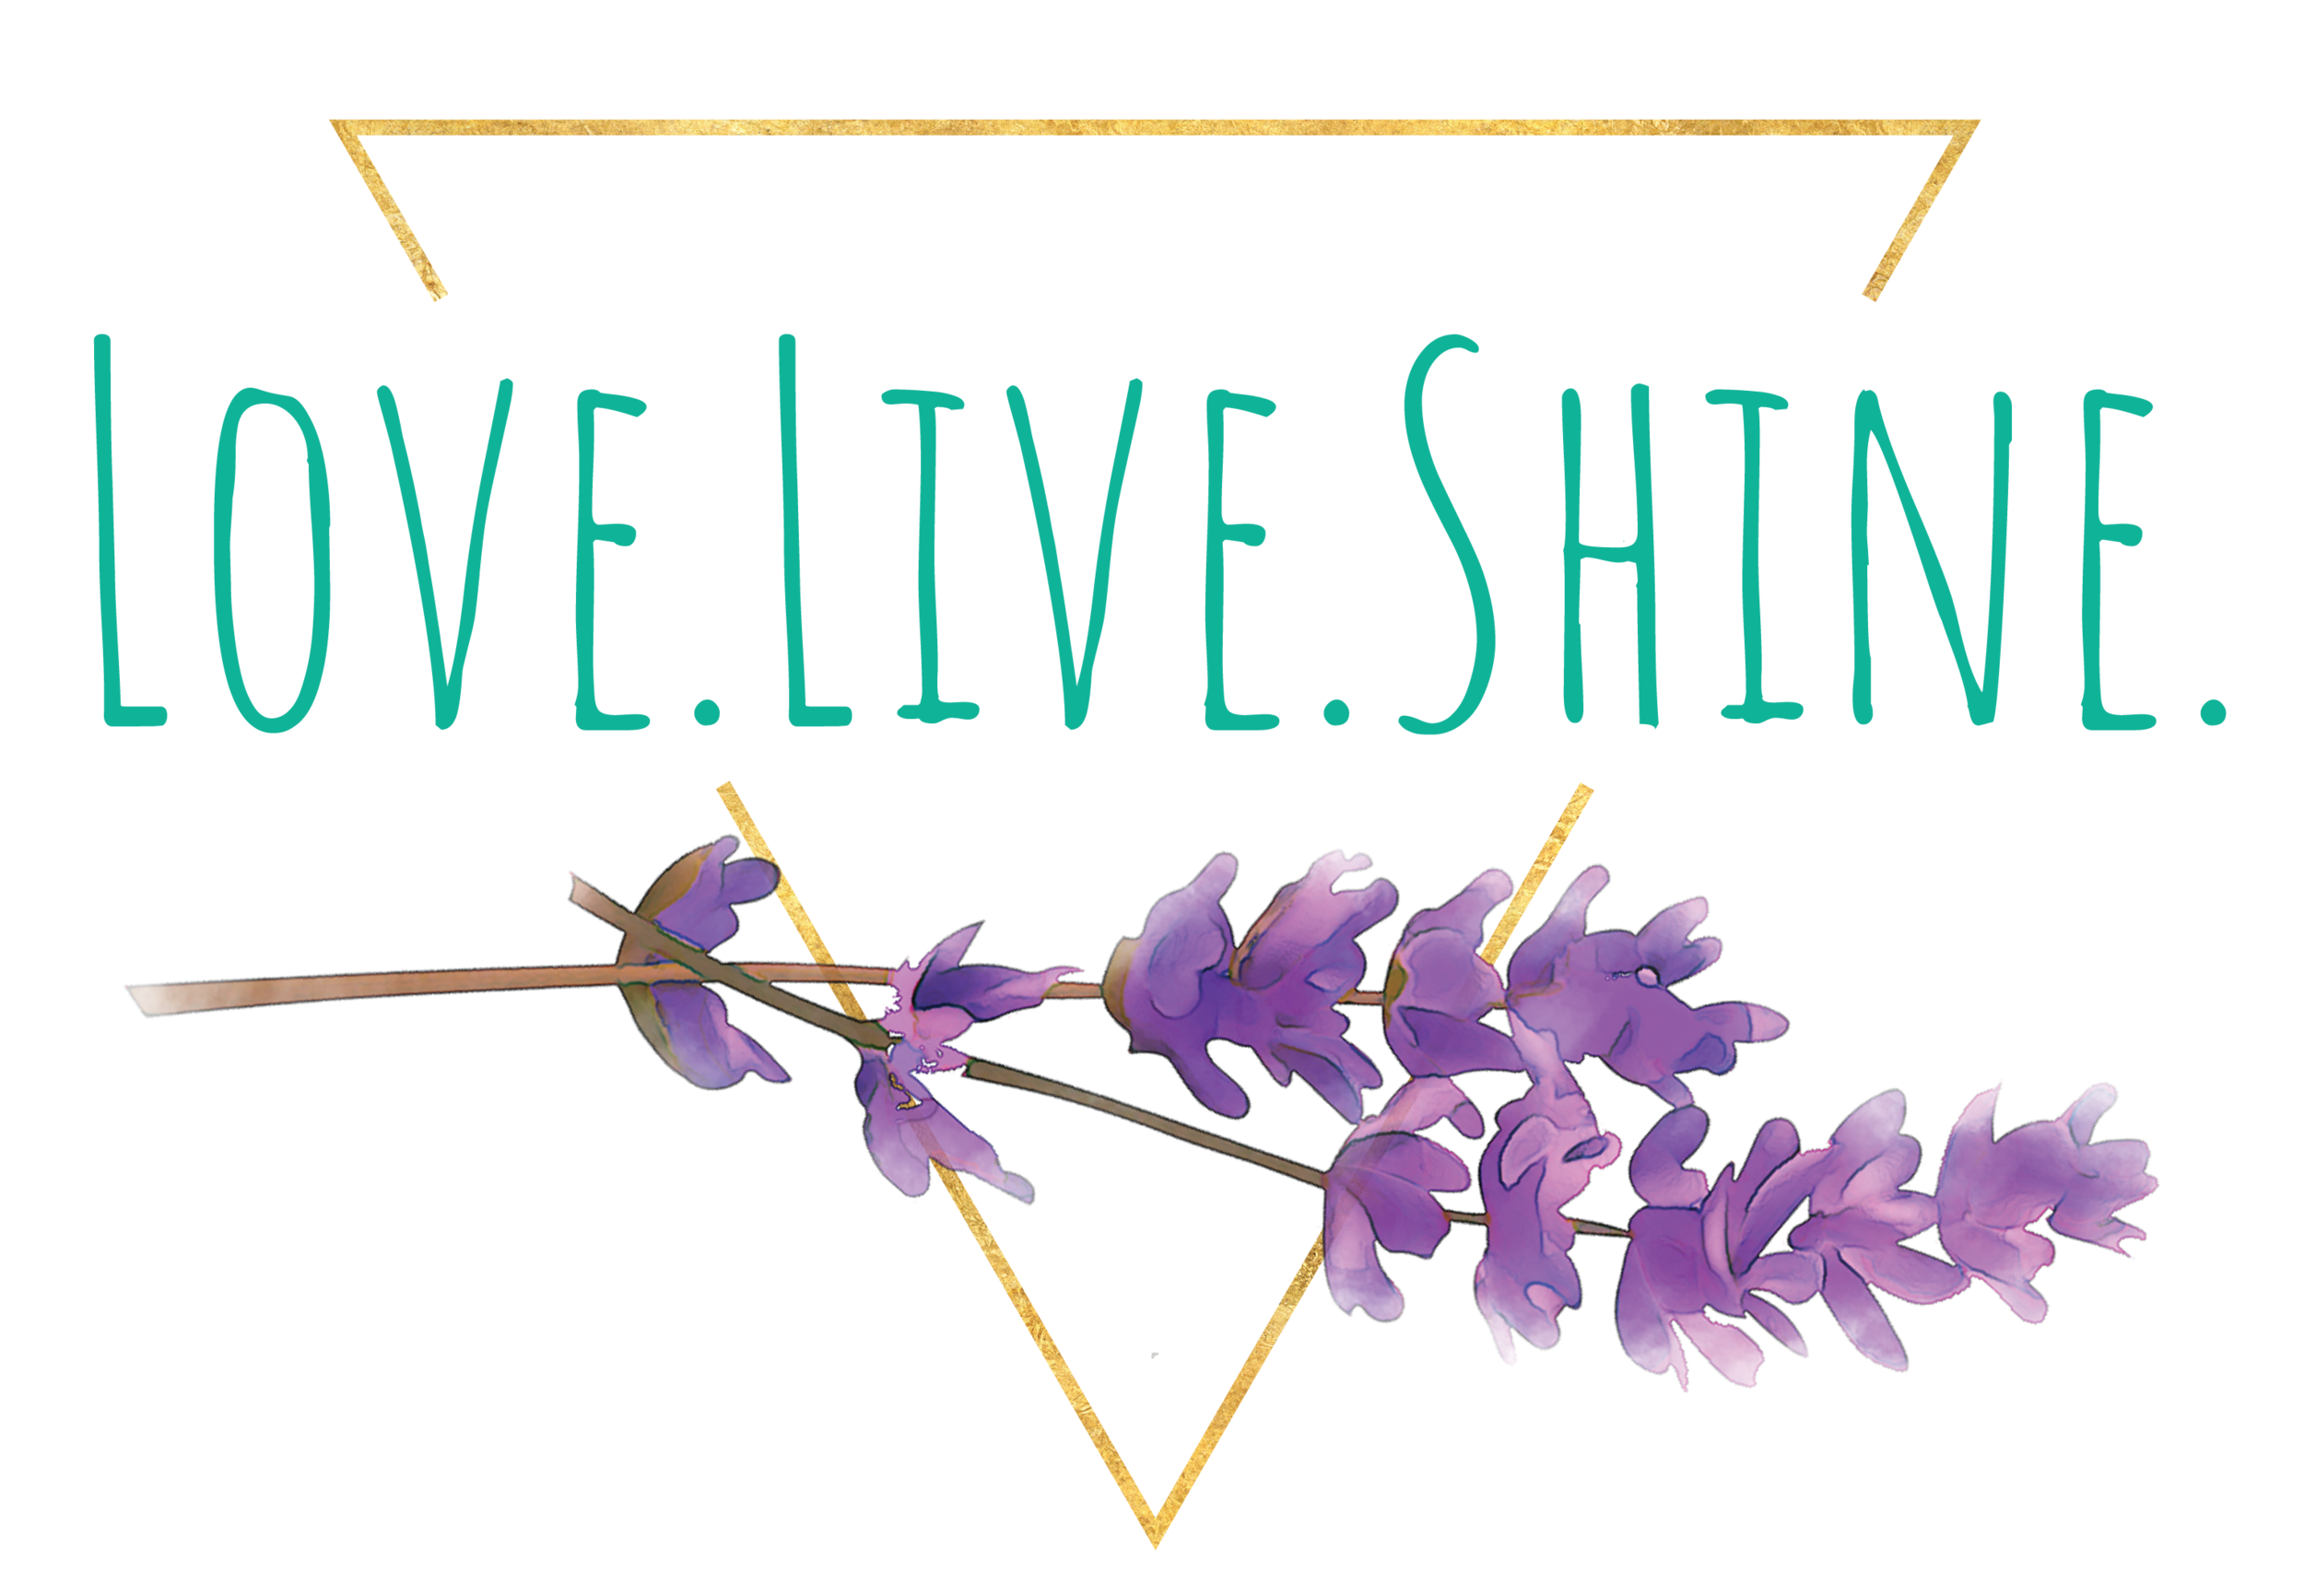 LOGO-FINAL_LOVE.LIVE.SHINE.png